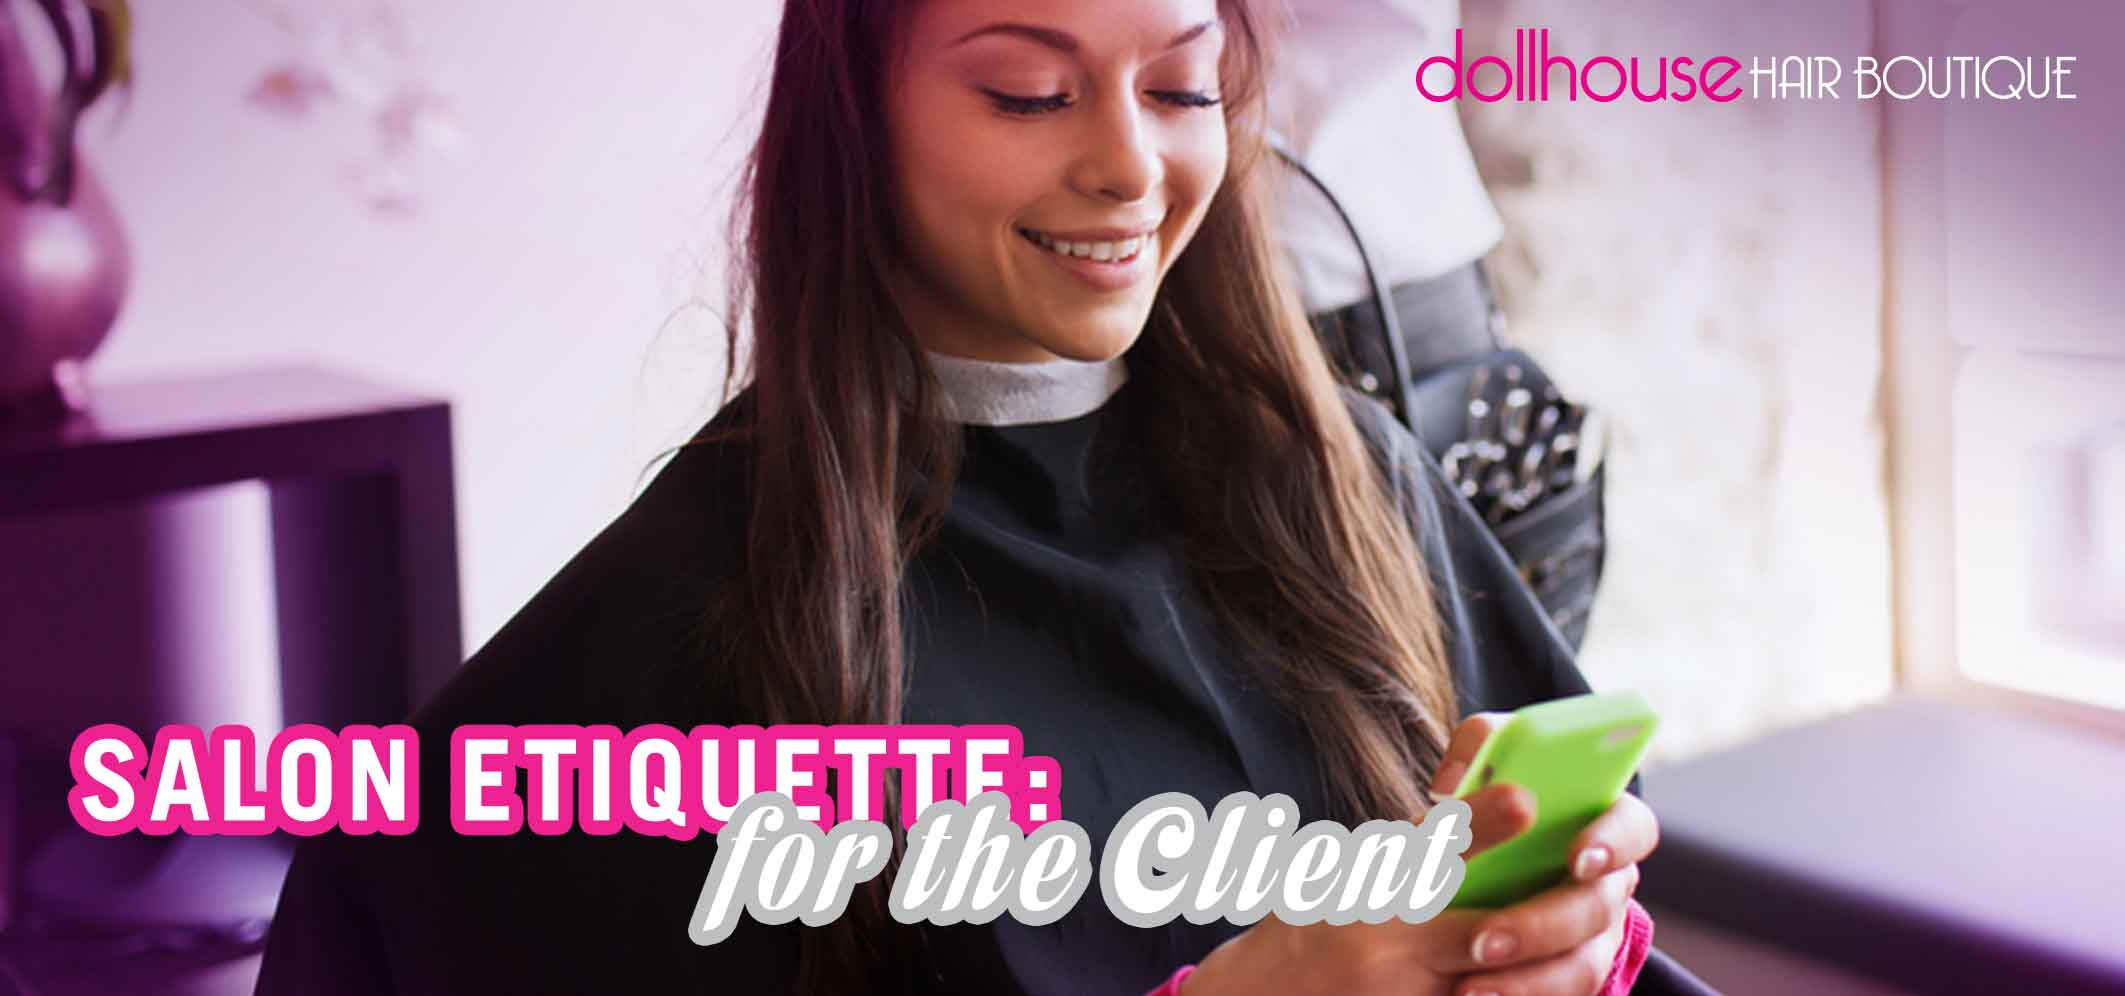 Salon-Etiquette-for-the-Client